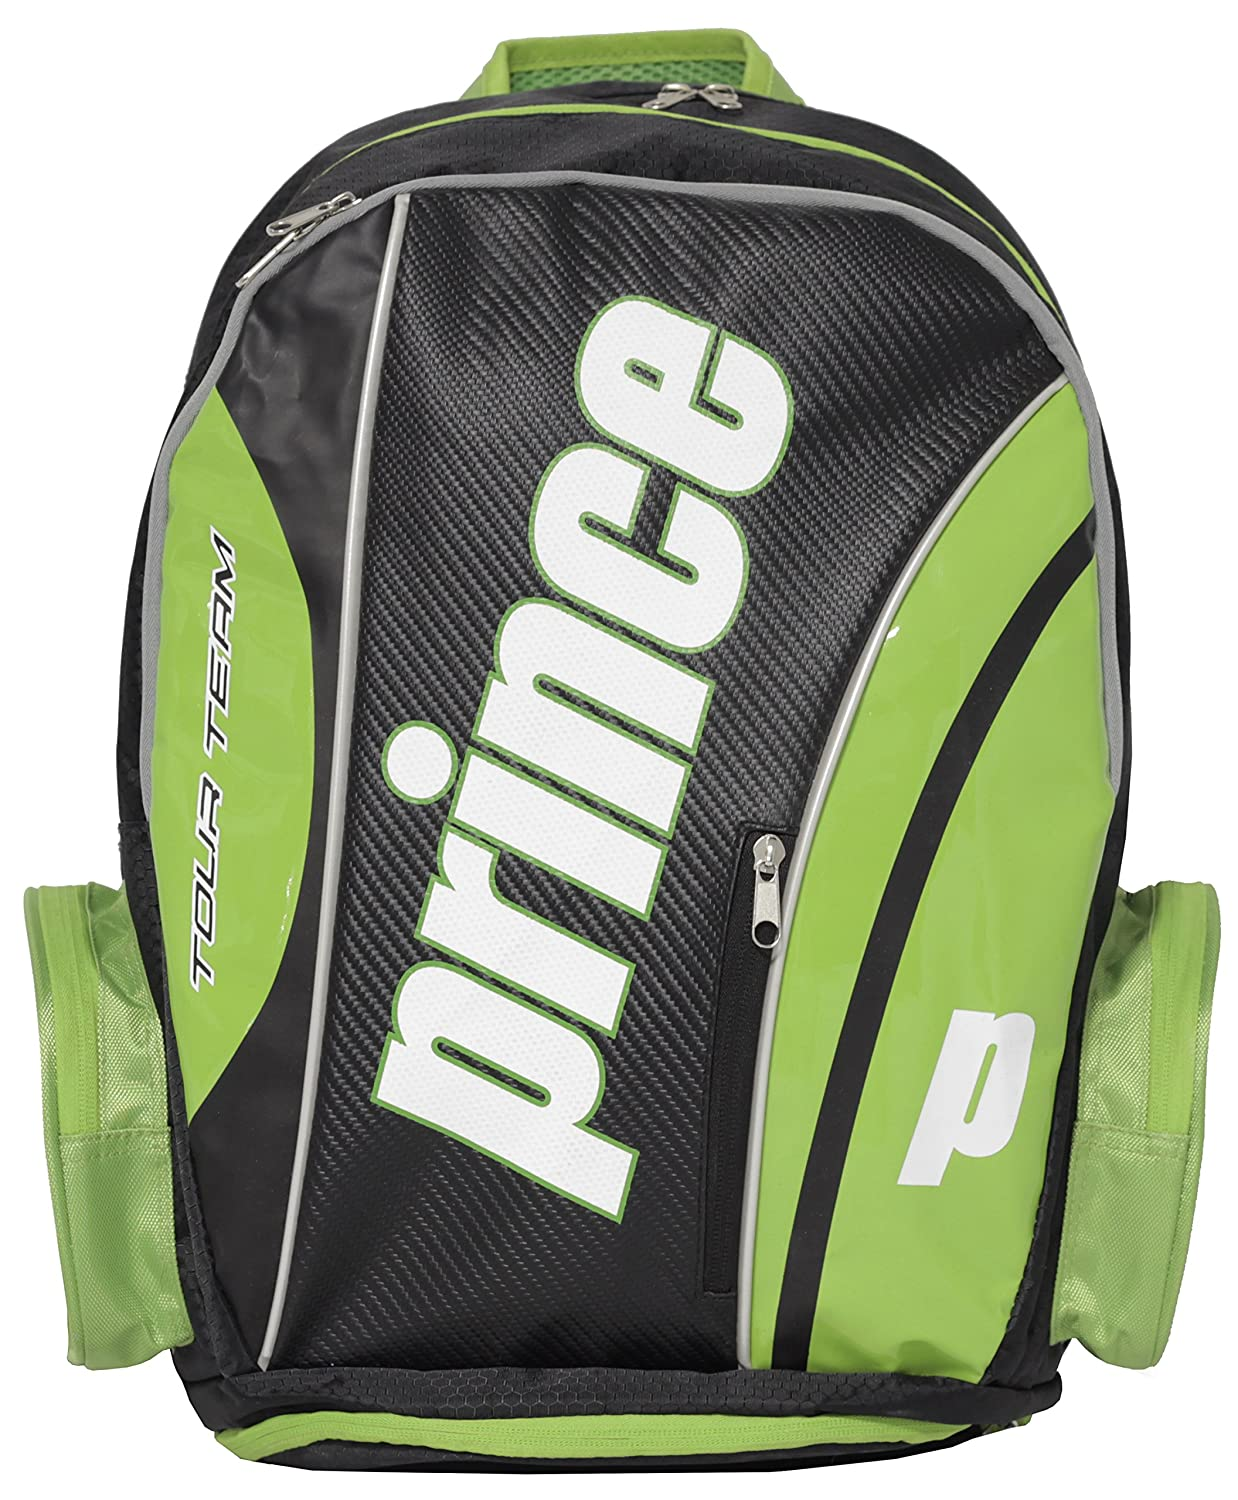 Prince Tour Team Paletero Padel, Unisex Adulto: Amazon.es ...